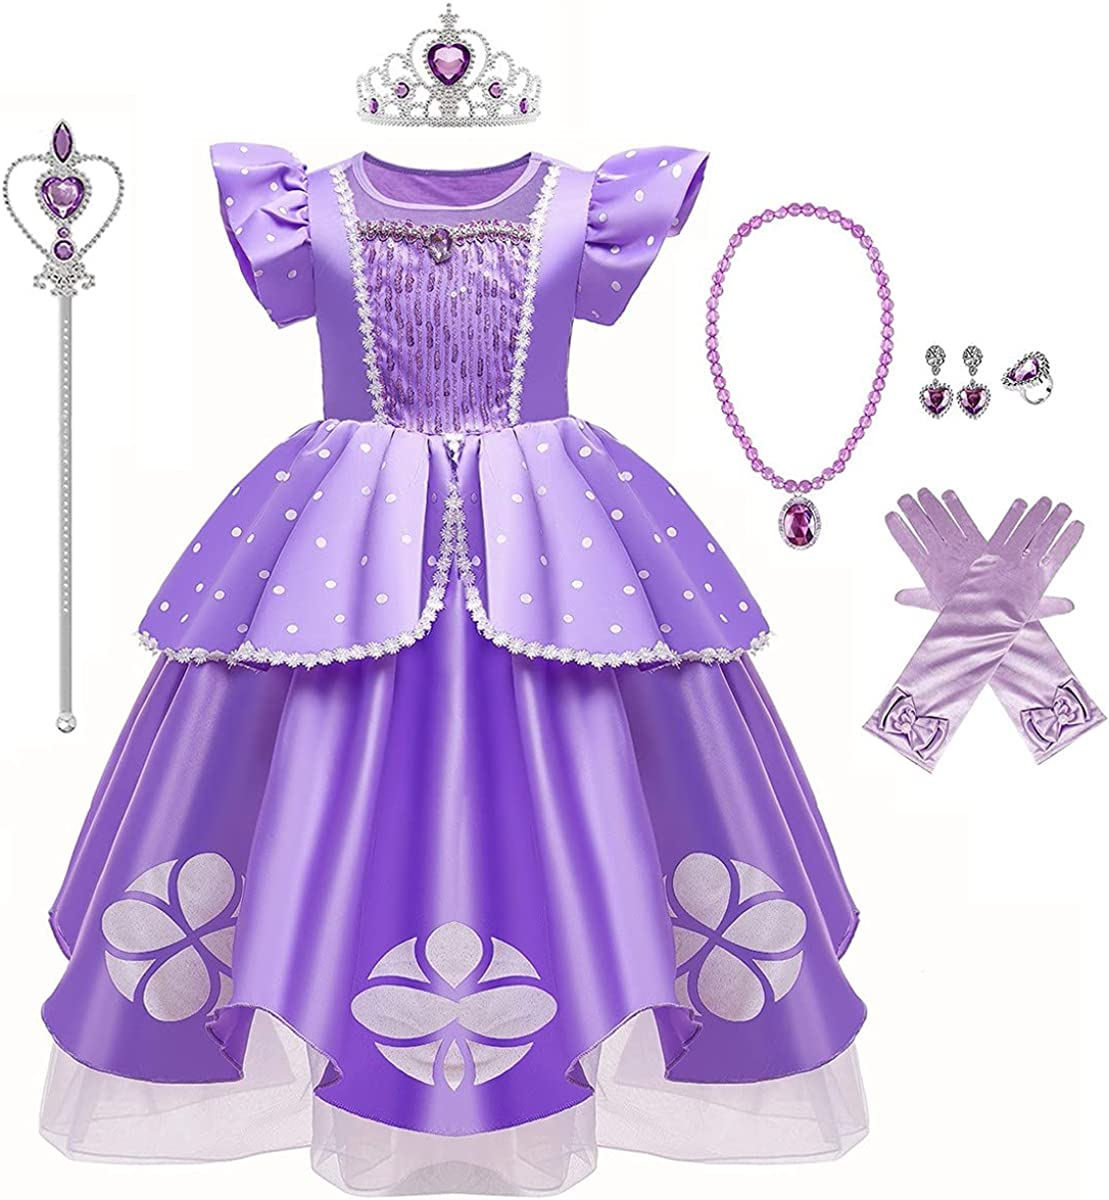 MYRISAM Special price for a limited time Rapunzel Princess Halloween Dress Deluxe Sofia Bargain Costume P